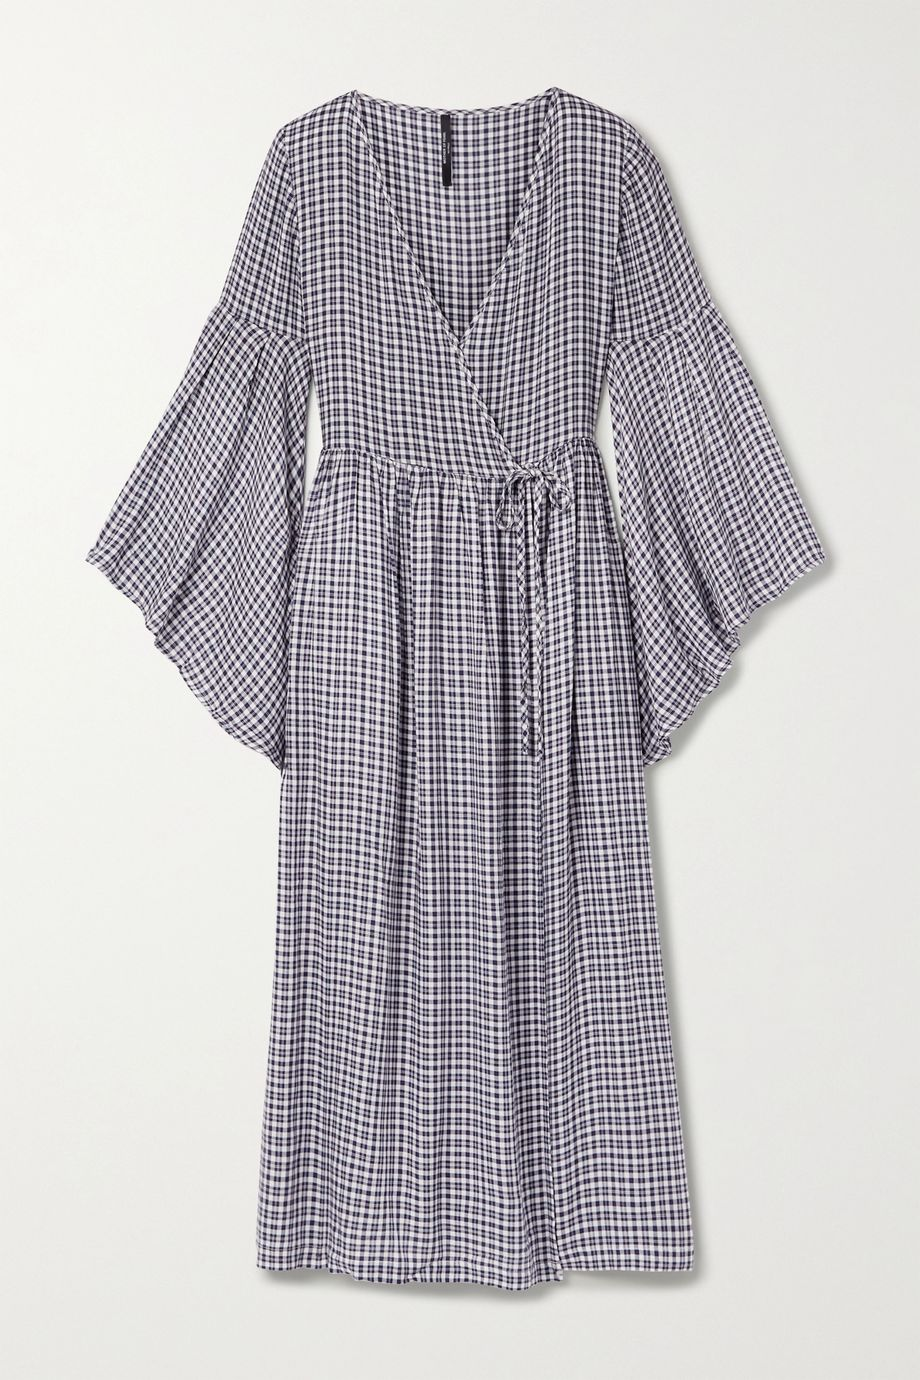 Mother of Pearl + NET SUSTAIN checked woven midi wrap dress